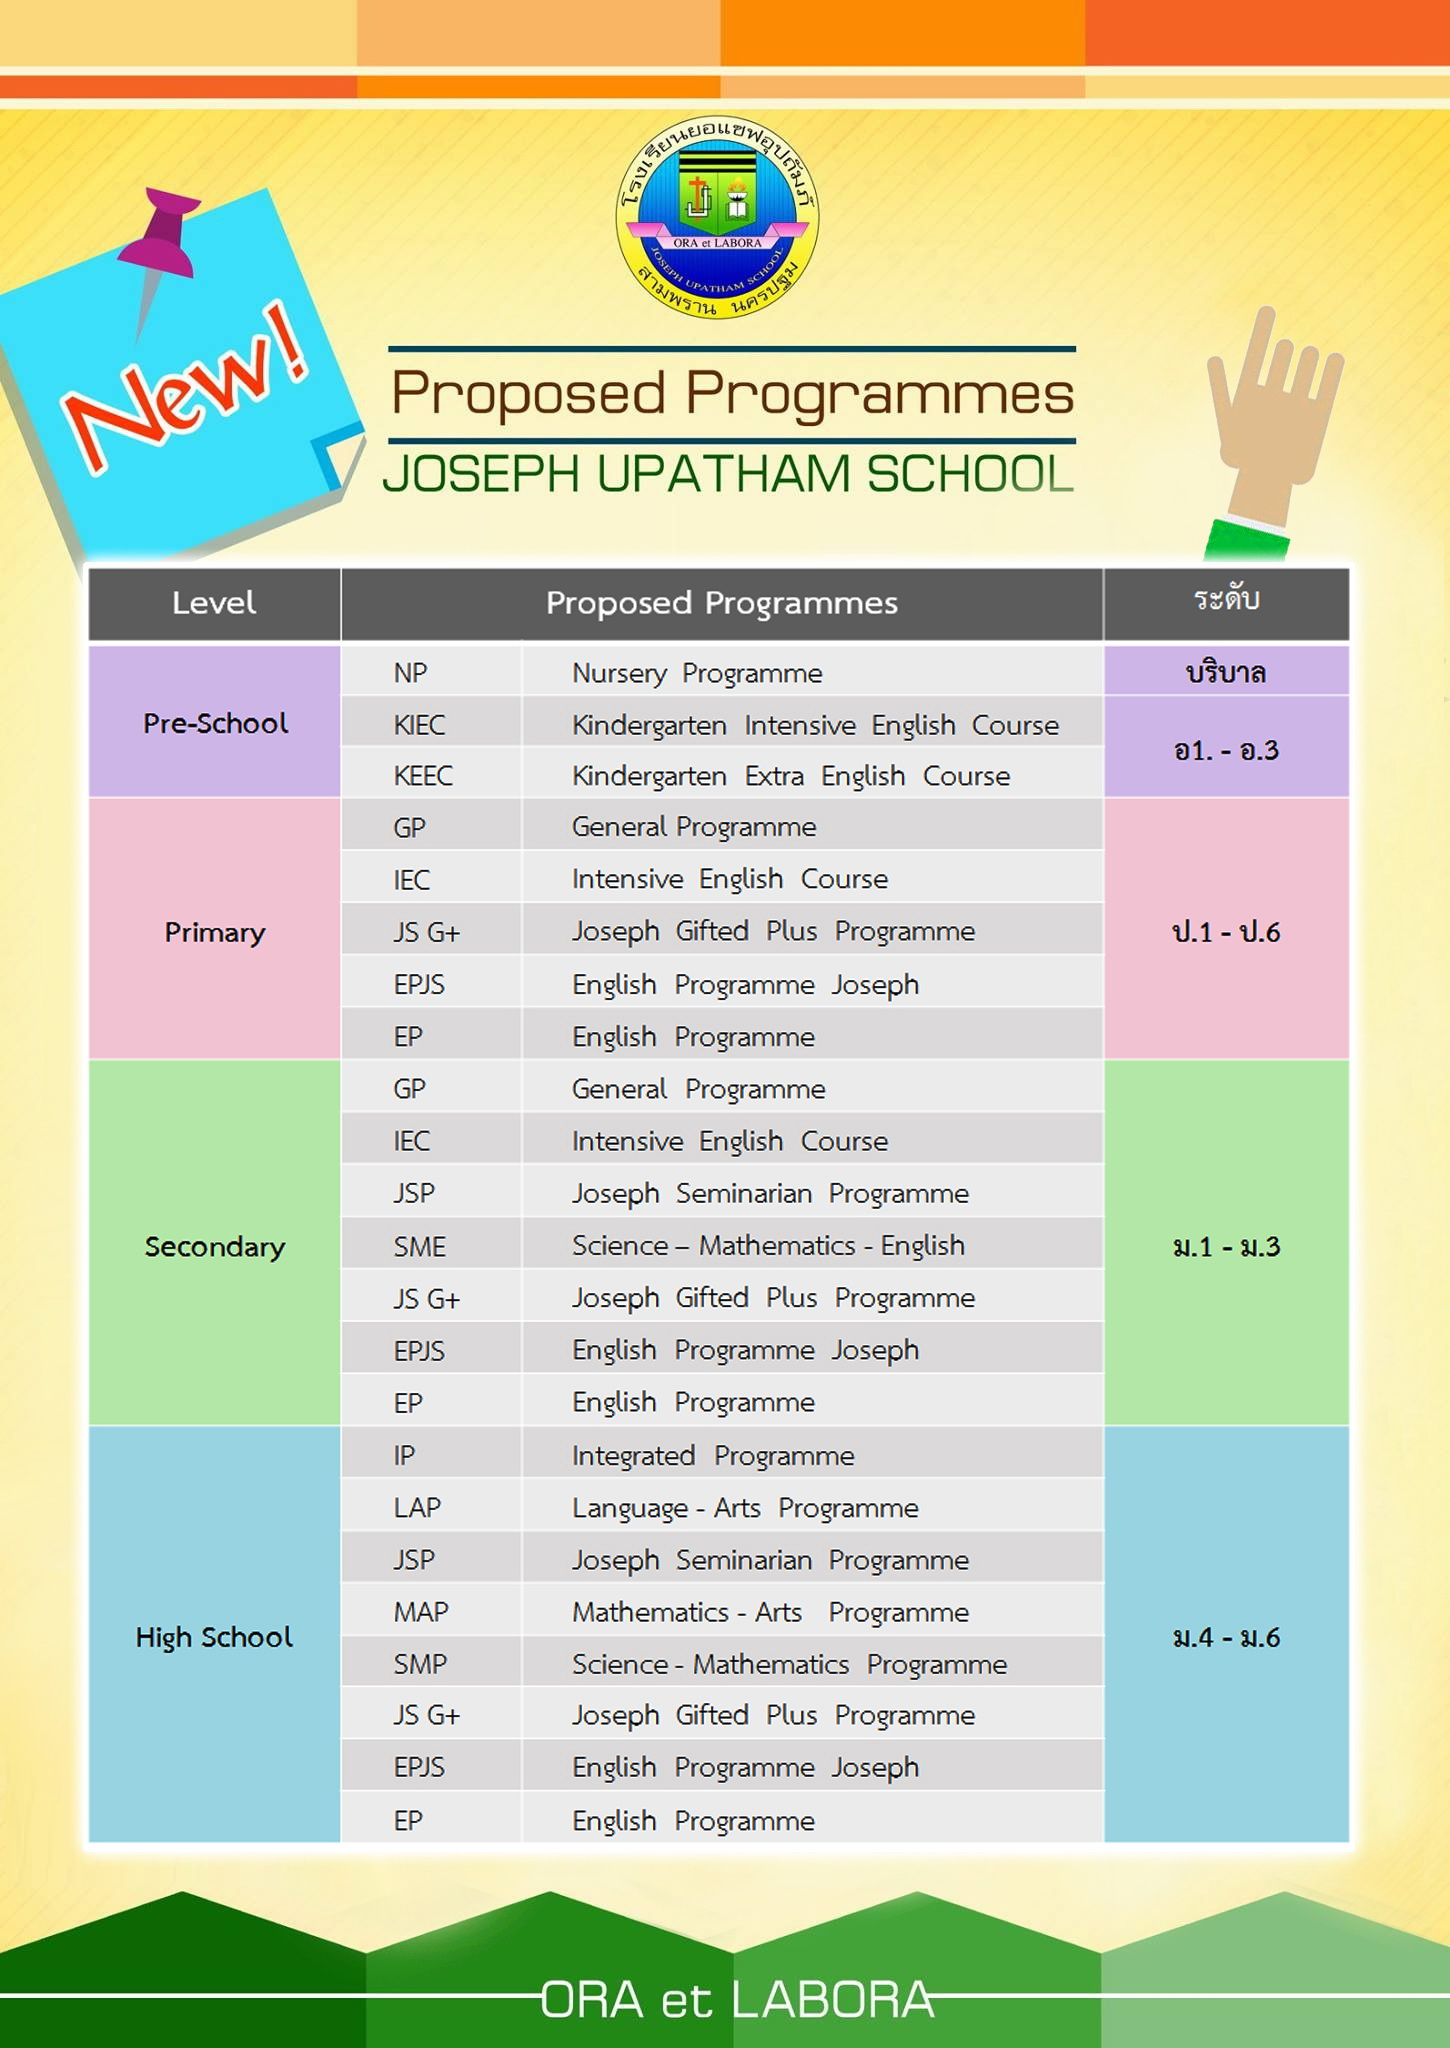 ProposedProgrammes